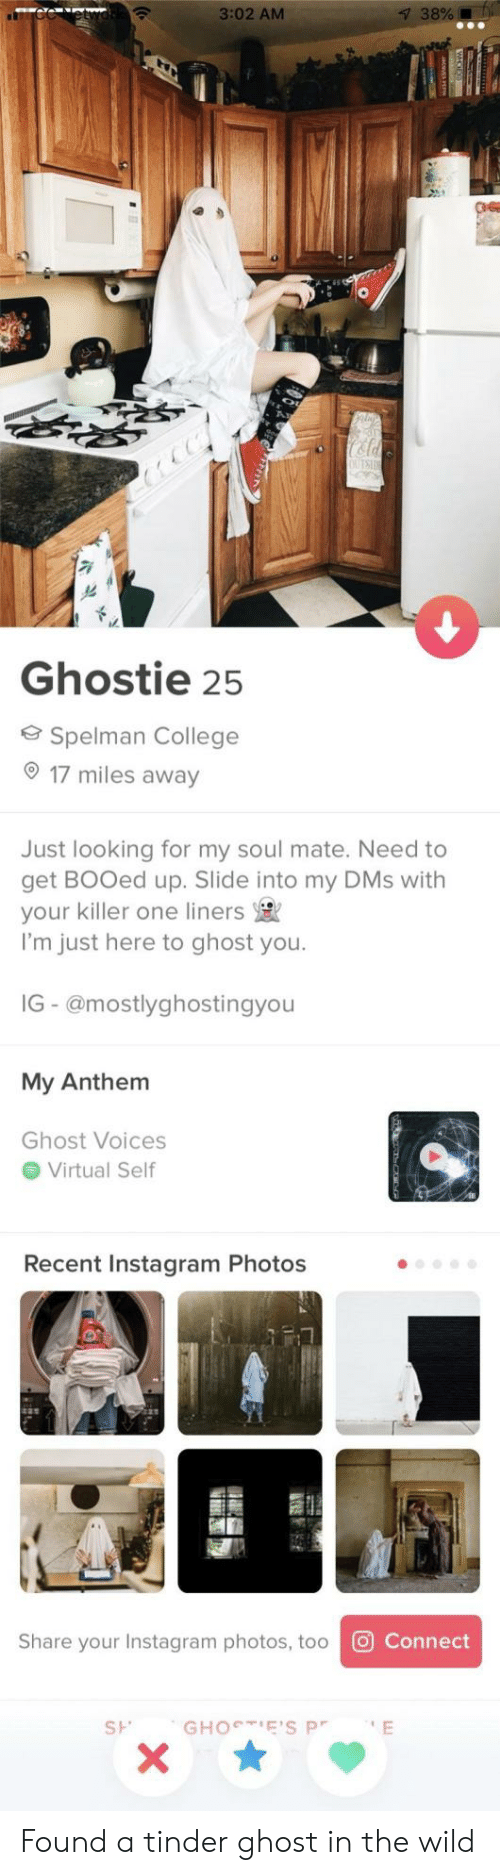 Slide Into My Dms: 3:02 AM  38%!  Ghostie 25  Spelman College  17 miles away  Just looking for my soul mate. Need to  get BOOed up. Slide into my DMs with  your killer one liners  I'm just here to ghost you.  IG - @mostlyghostingyou  My Anthem  Ghost Voices  Virtual Self  Recent Instagram Photos  Share your Instagram photos, too  O  St. Found a tinder ghost in the wild